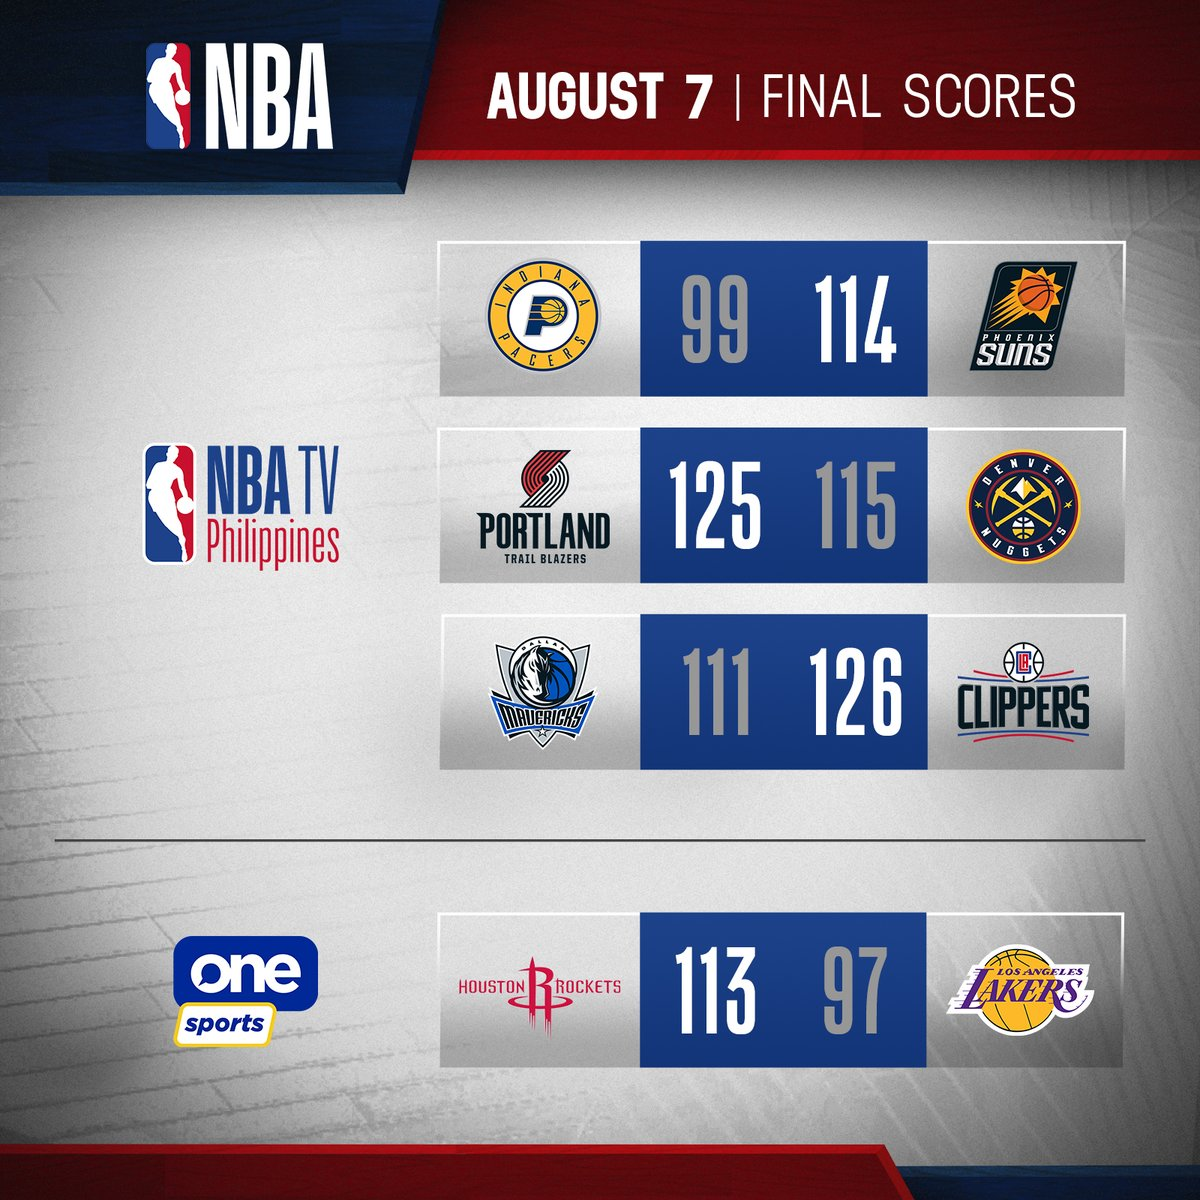 Here are today's NBA Scores for Aug 7, 2020.  Pacers vs Suns Replay @ 2PM Trail Blazers vs Nuggets. Replay @ 5PM and 11PM Mavericks vs Clippers. Replay @ 8PM Rockets vs Lakers. Replay @ 5:30PM on One Sports  #StaySafeStayAwesome  #LiveAwesome #WholeNewGame #NBAonCignal https://t.co/yzKvedP9eI